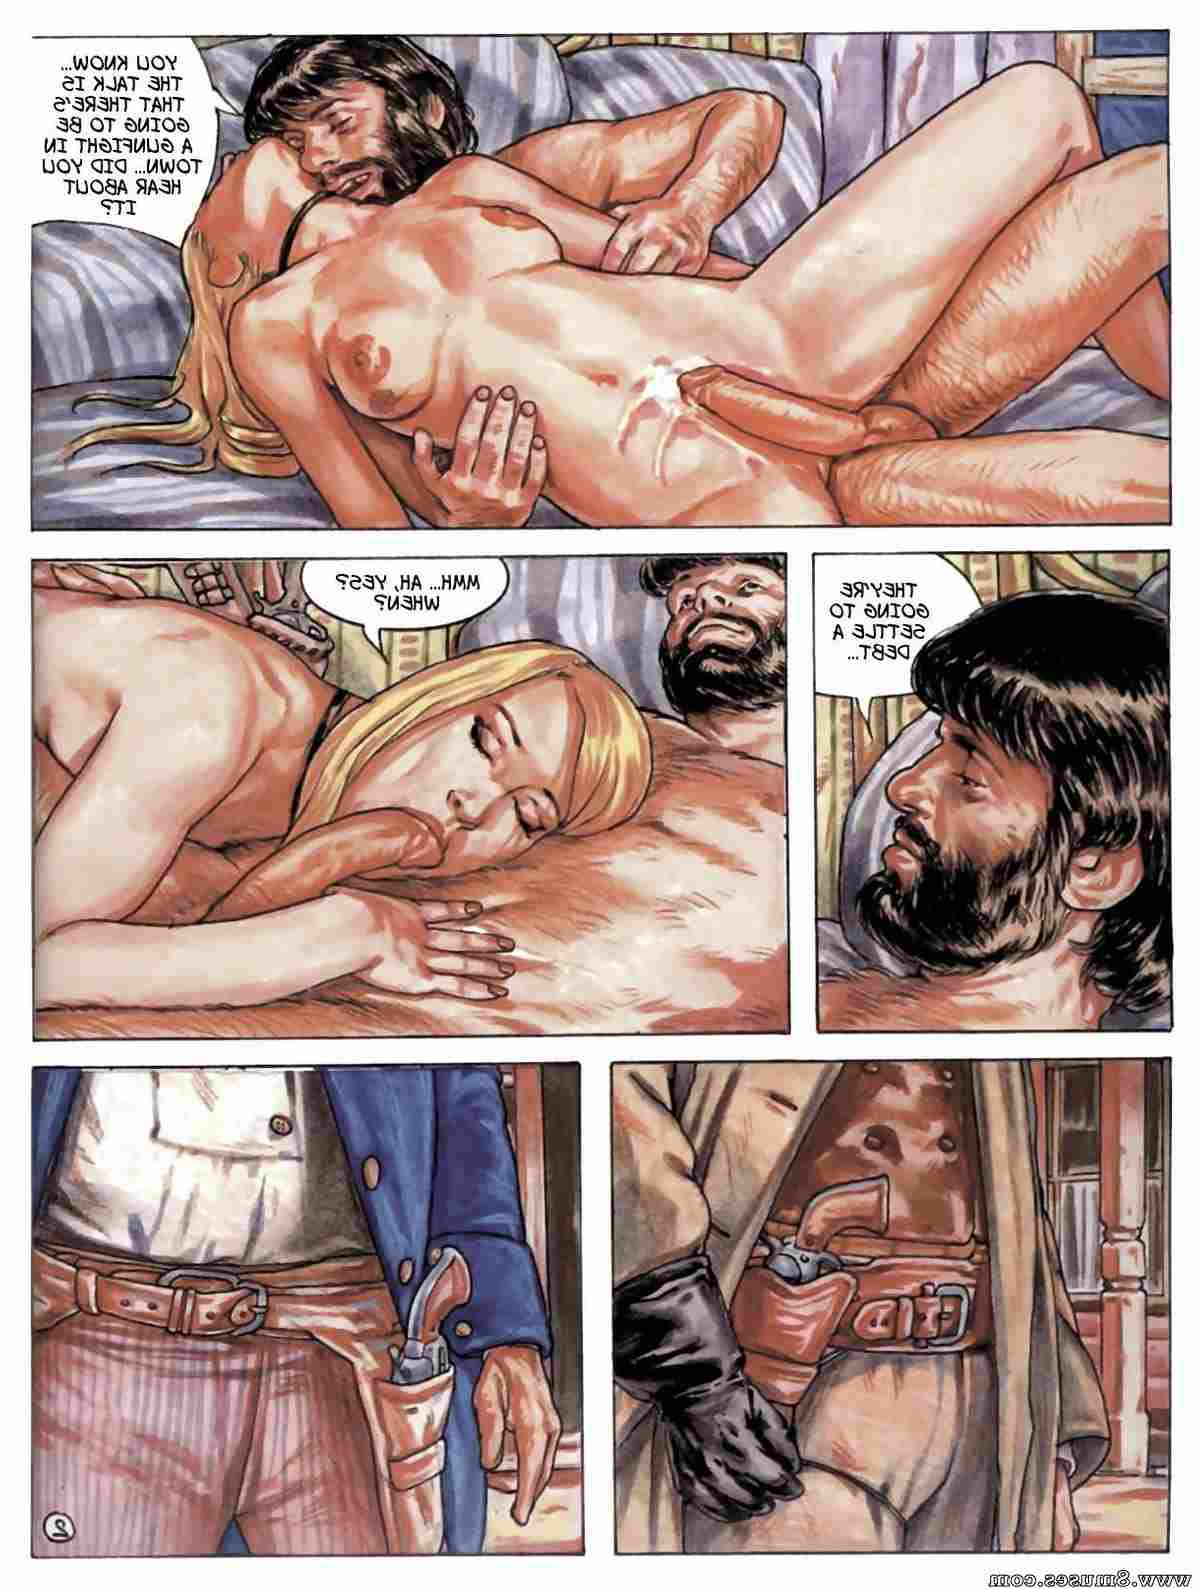 Selen-Comics/Beloved-Submission Beloved_Submission__8muses_-_Sex_and_Porn_Comics_18.jpg